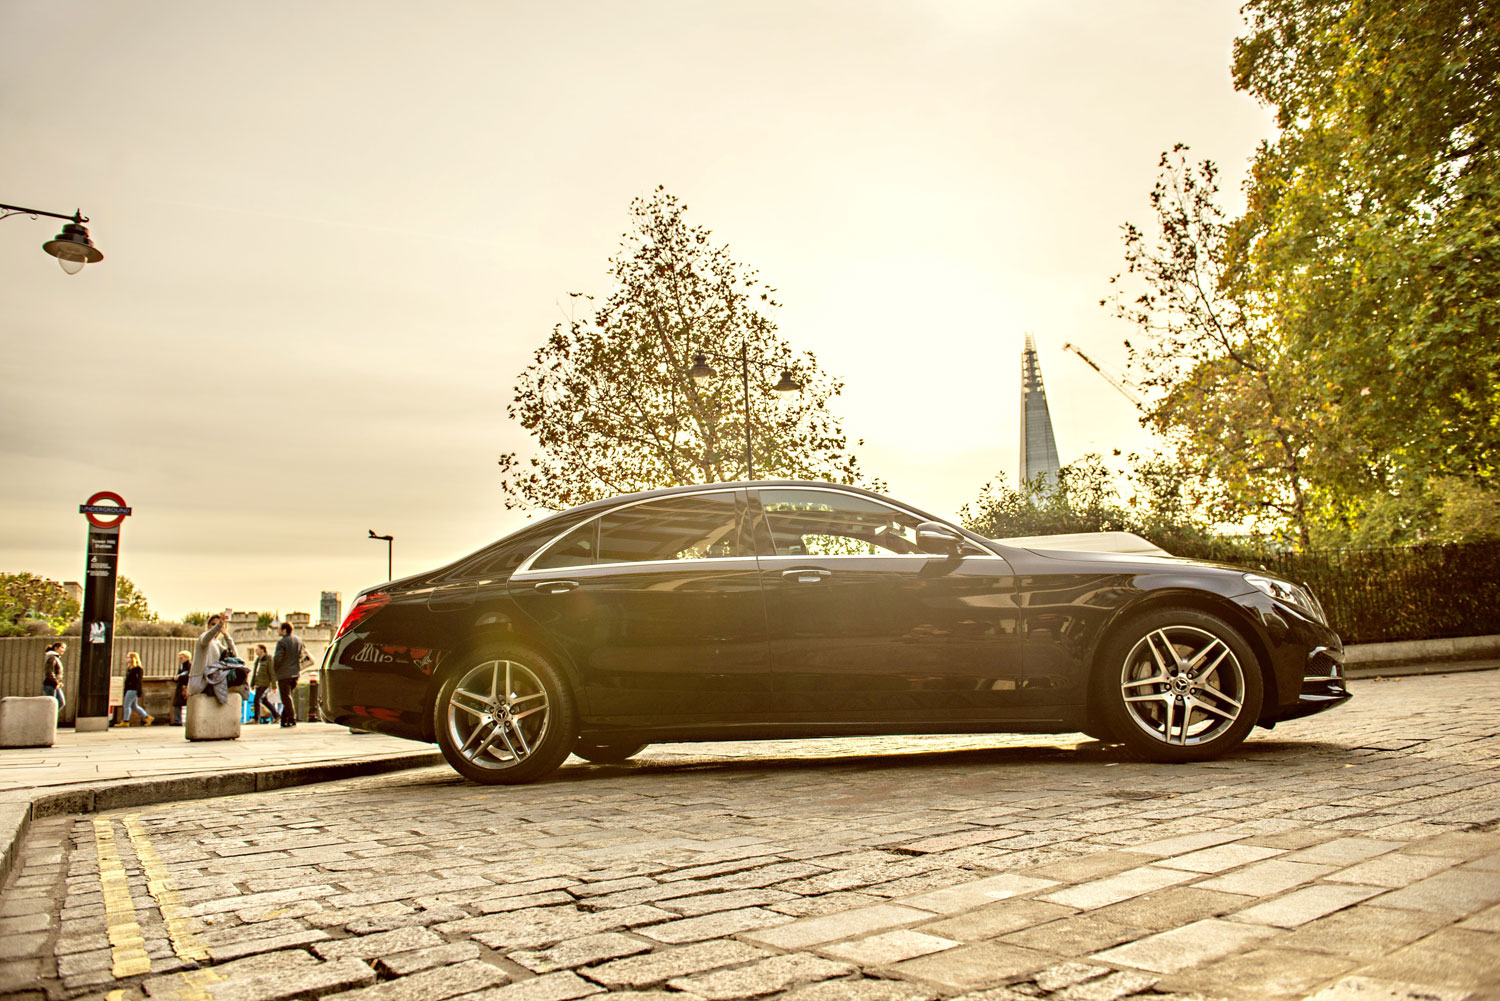 Skip The Queues And Travel Like An A-Lister With The Blacklane PASS 3